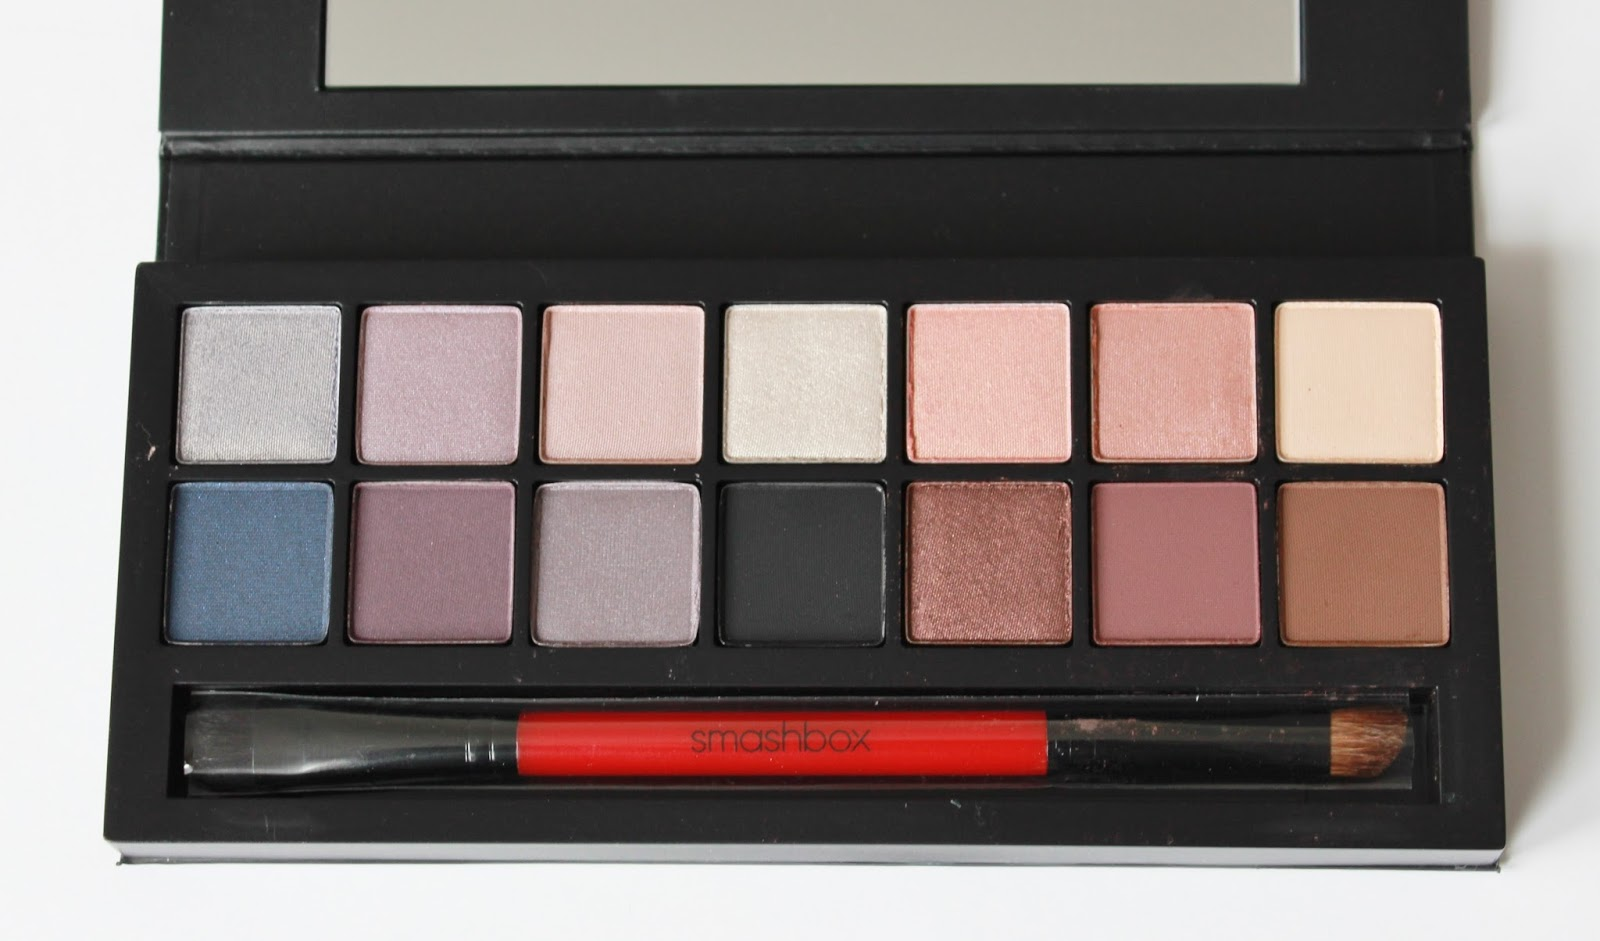 Smashbox double exposure eye shadow palette